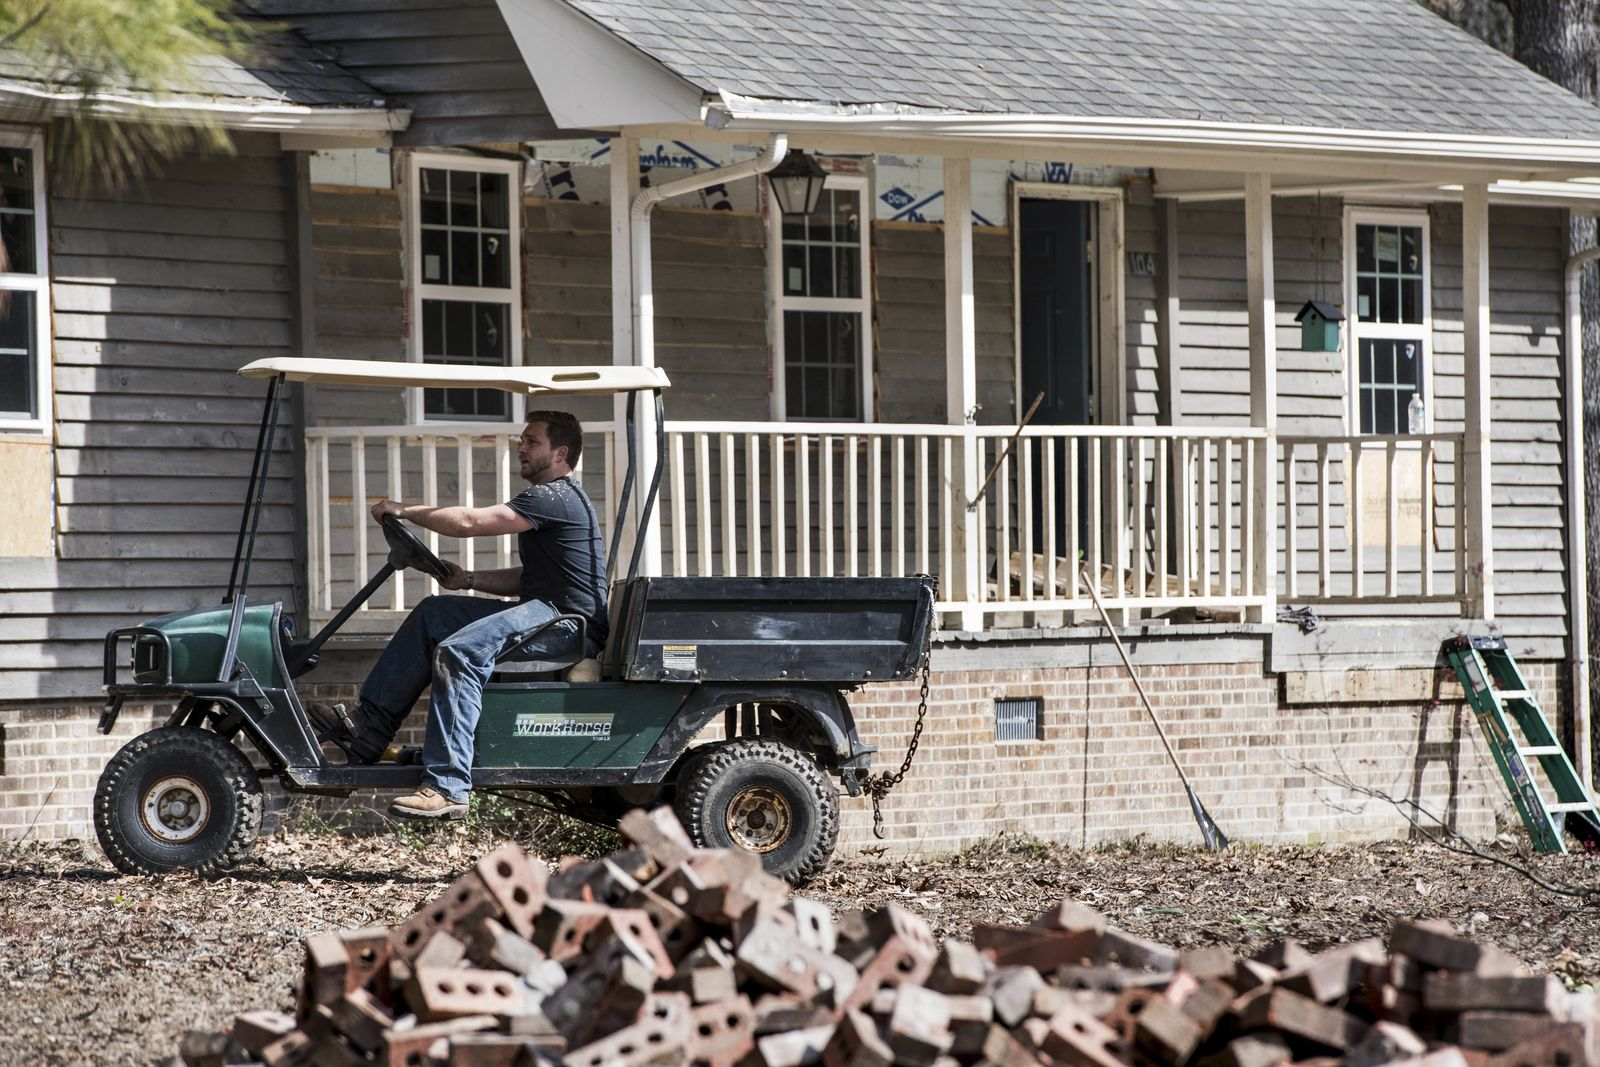 Austin Black works to repair a home damaged by flooding from Hurricane Florence near the Crabtree Swamp Friday, Feb. 1, 2019, in Conway, S.C.{ } (AP Photo/Sean Rayford)